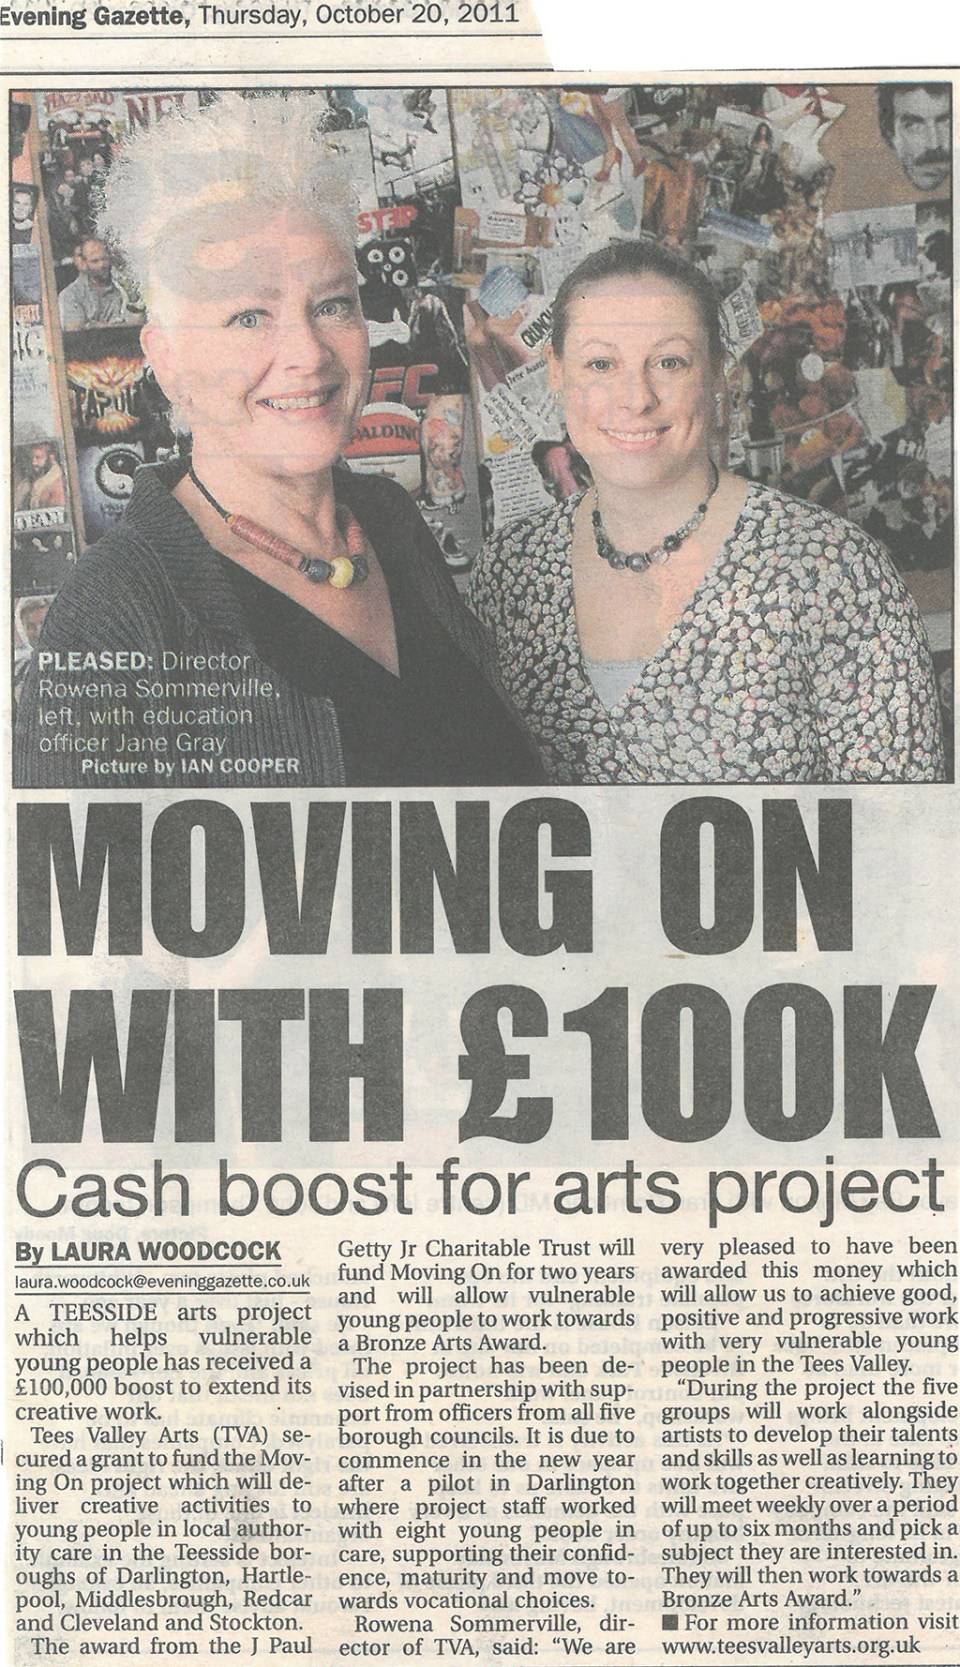 2011-10-20, Evening Gazette